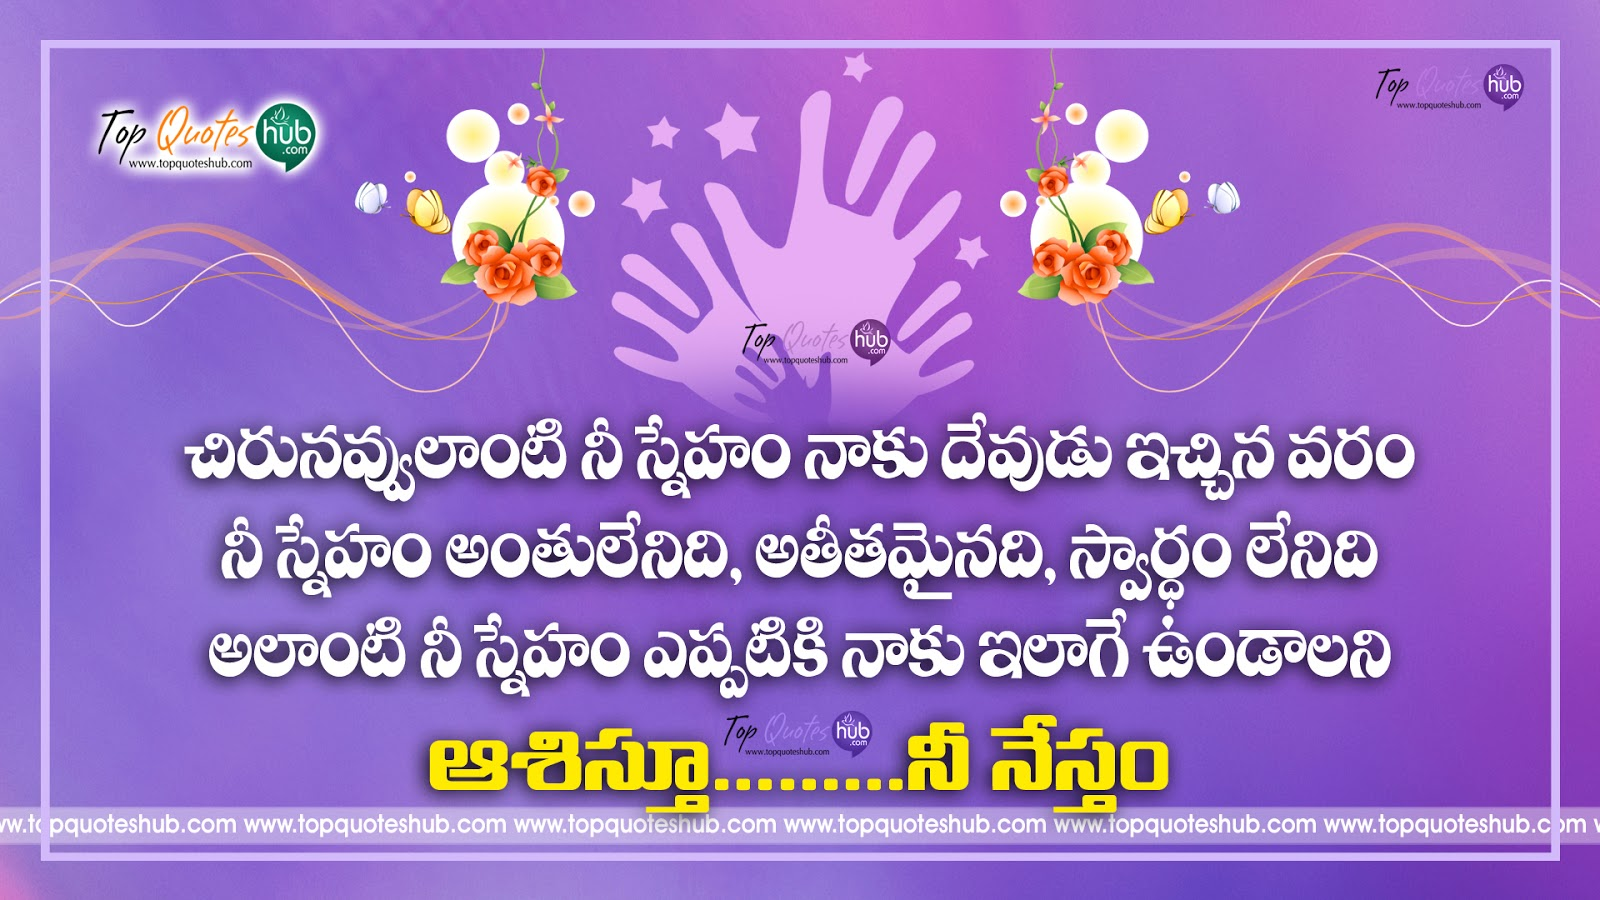 Best Friendship Quotes And Greetings In Telugu Topquoteshub